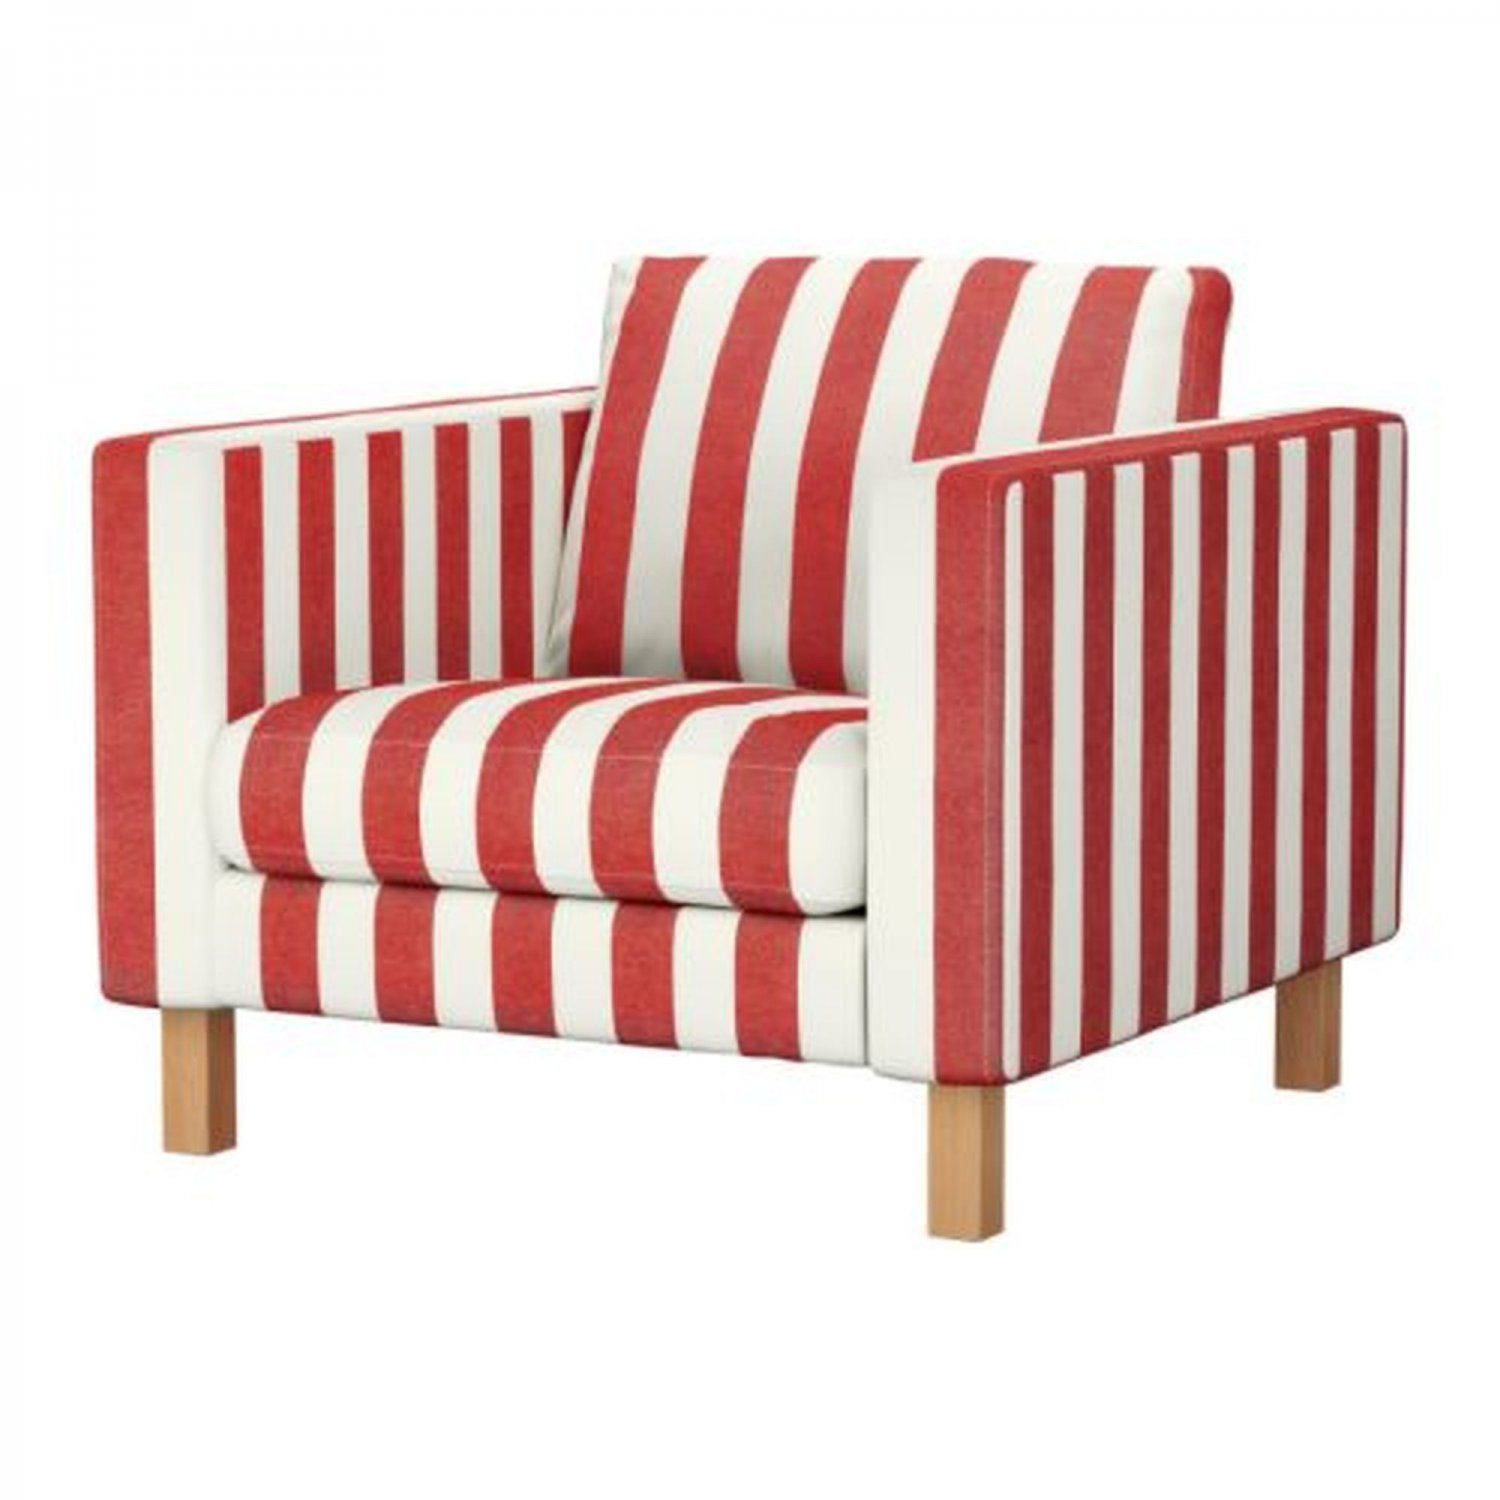 Red Striped Chair Ikea Karlstad Armchair Slipcover Chair Cover Rannebo Red